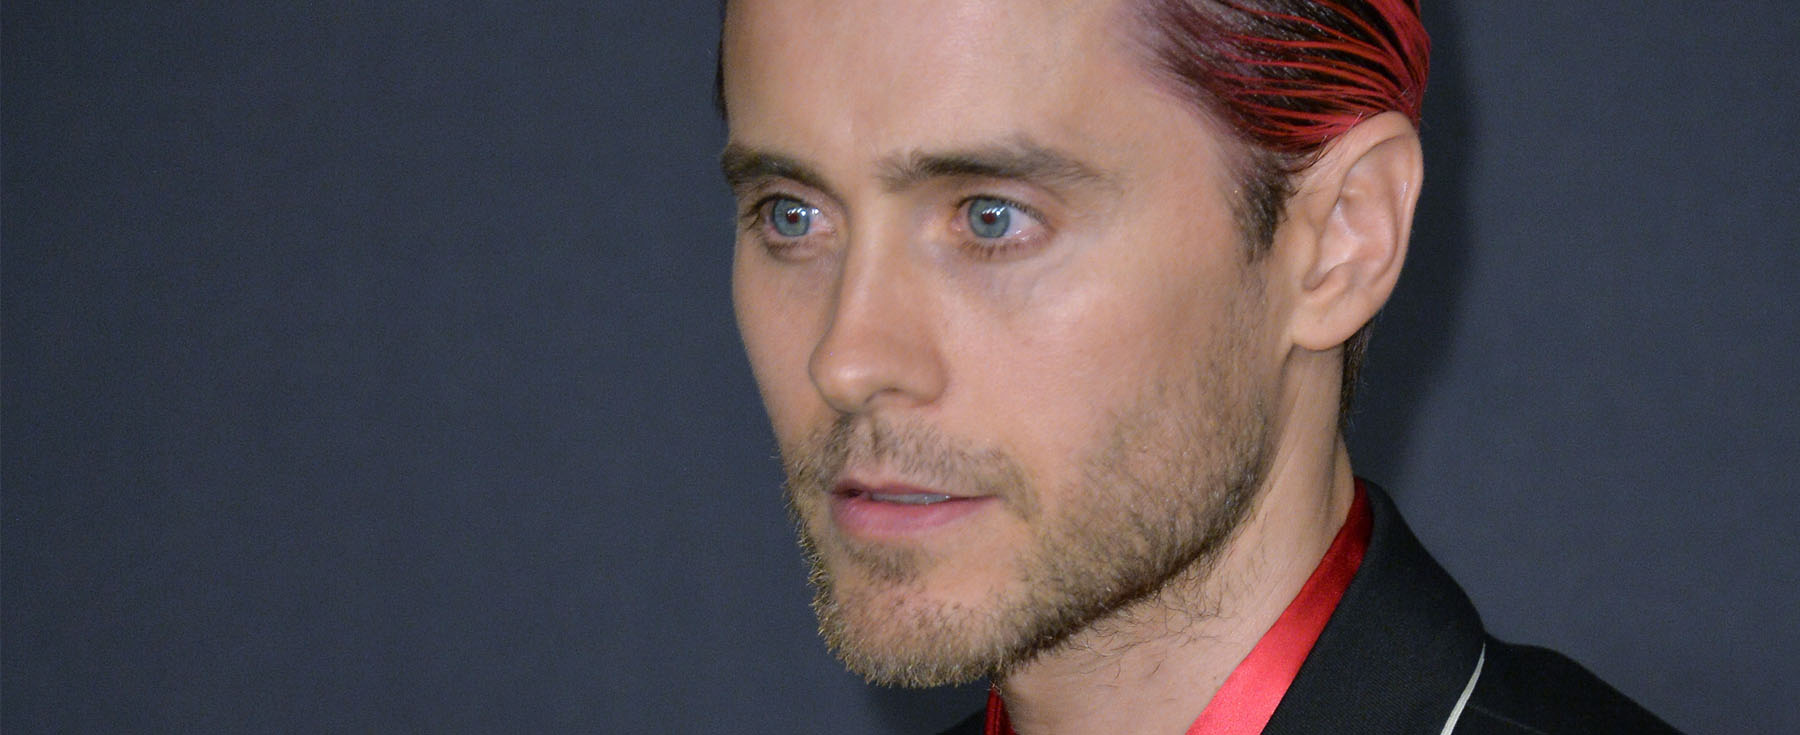 jared leto youngjared leto 2016, jared leto instagram, jared leto 2017, jared leto vk, jared leto gucci, jared leto wiki, jared leto height, jared leto films, jared leto рост, jared leto fight club, jared leto young, jared leto tumblr, jared leto quotes, jared leto oscar, jared leto hurricane, jared leto wikipedia, jared leto личная жизнь, jared leto песни, jared leto movies, jared leto carrera